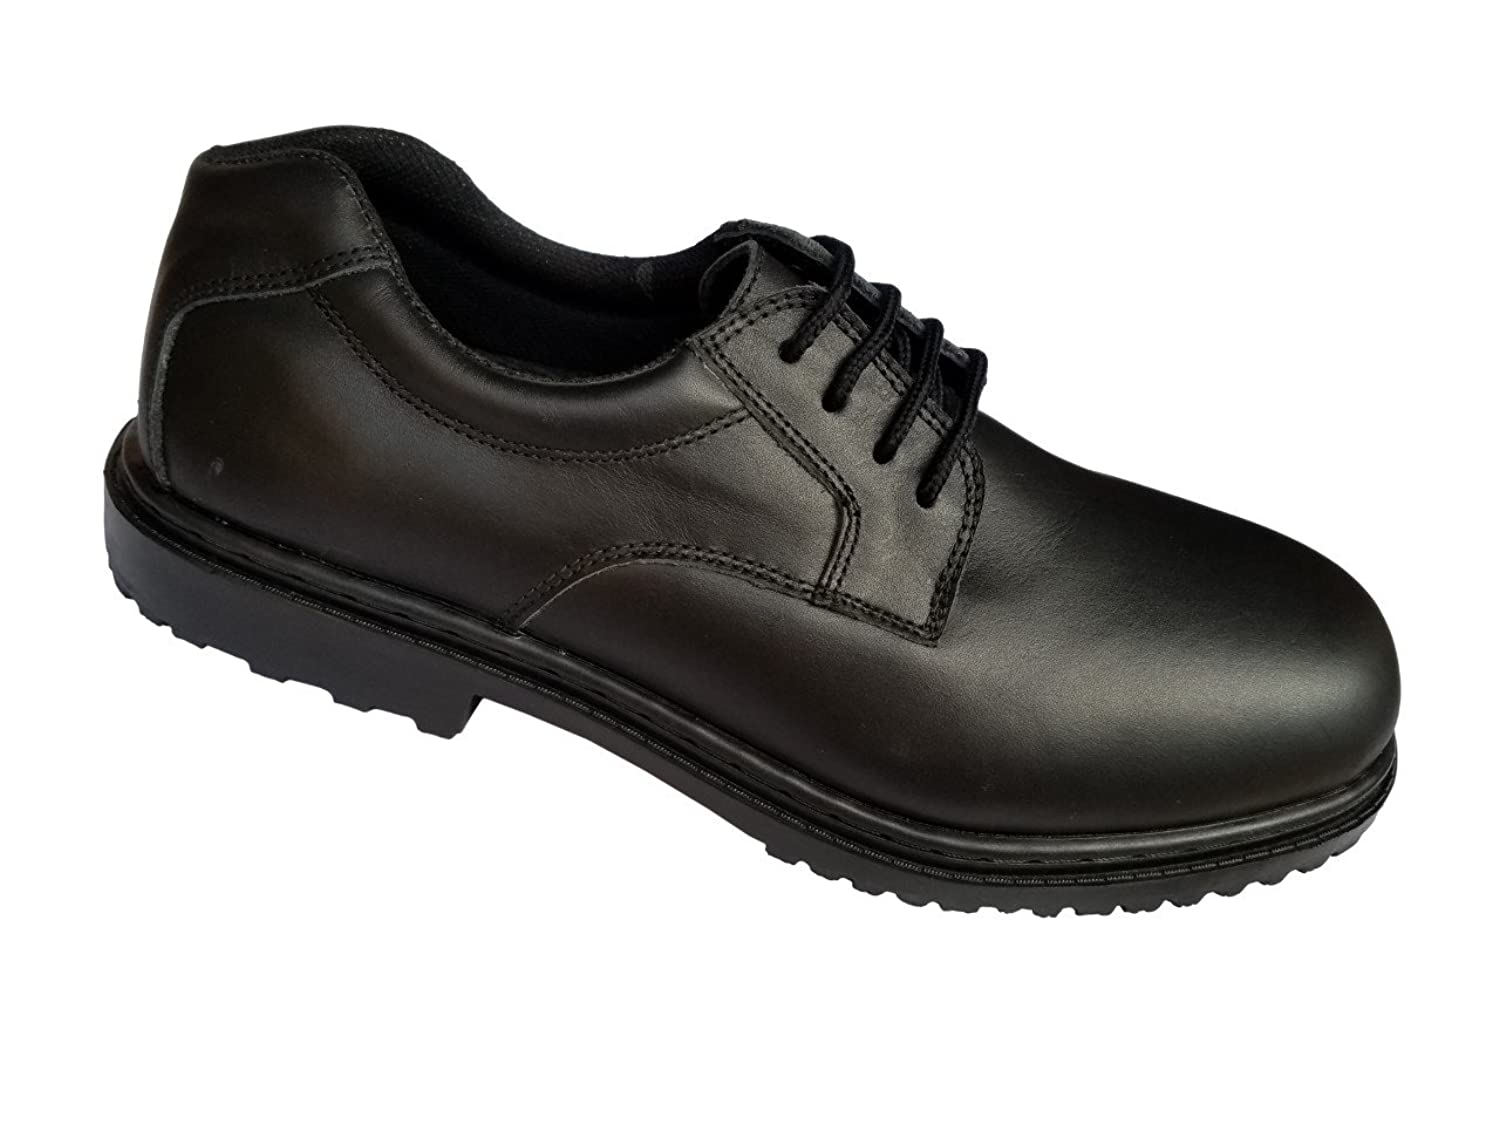 Excelshoes by JS Company Orlando Inc メンズ B013PVVSIS  ブラック 10.5 D(M) US